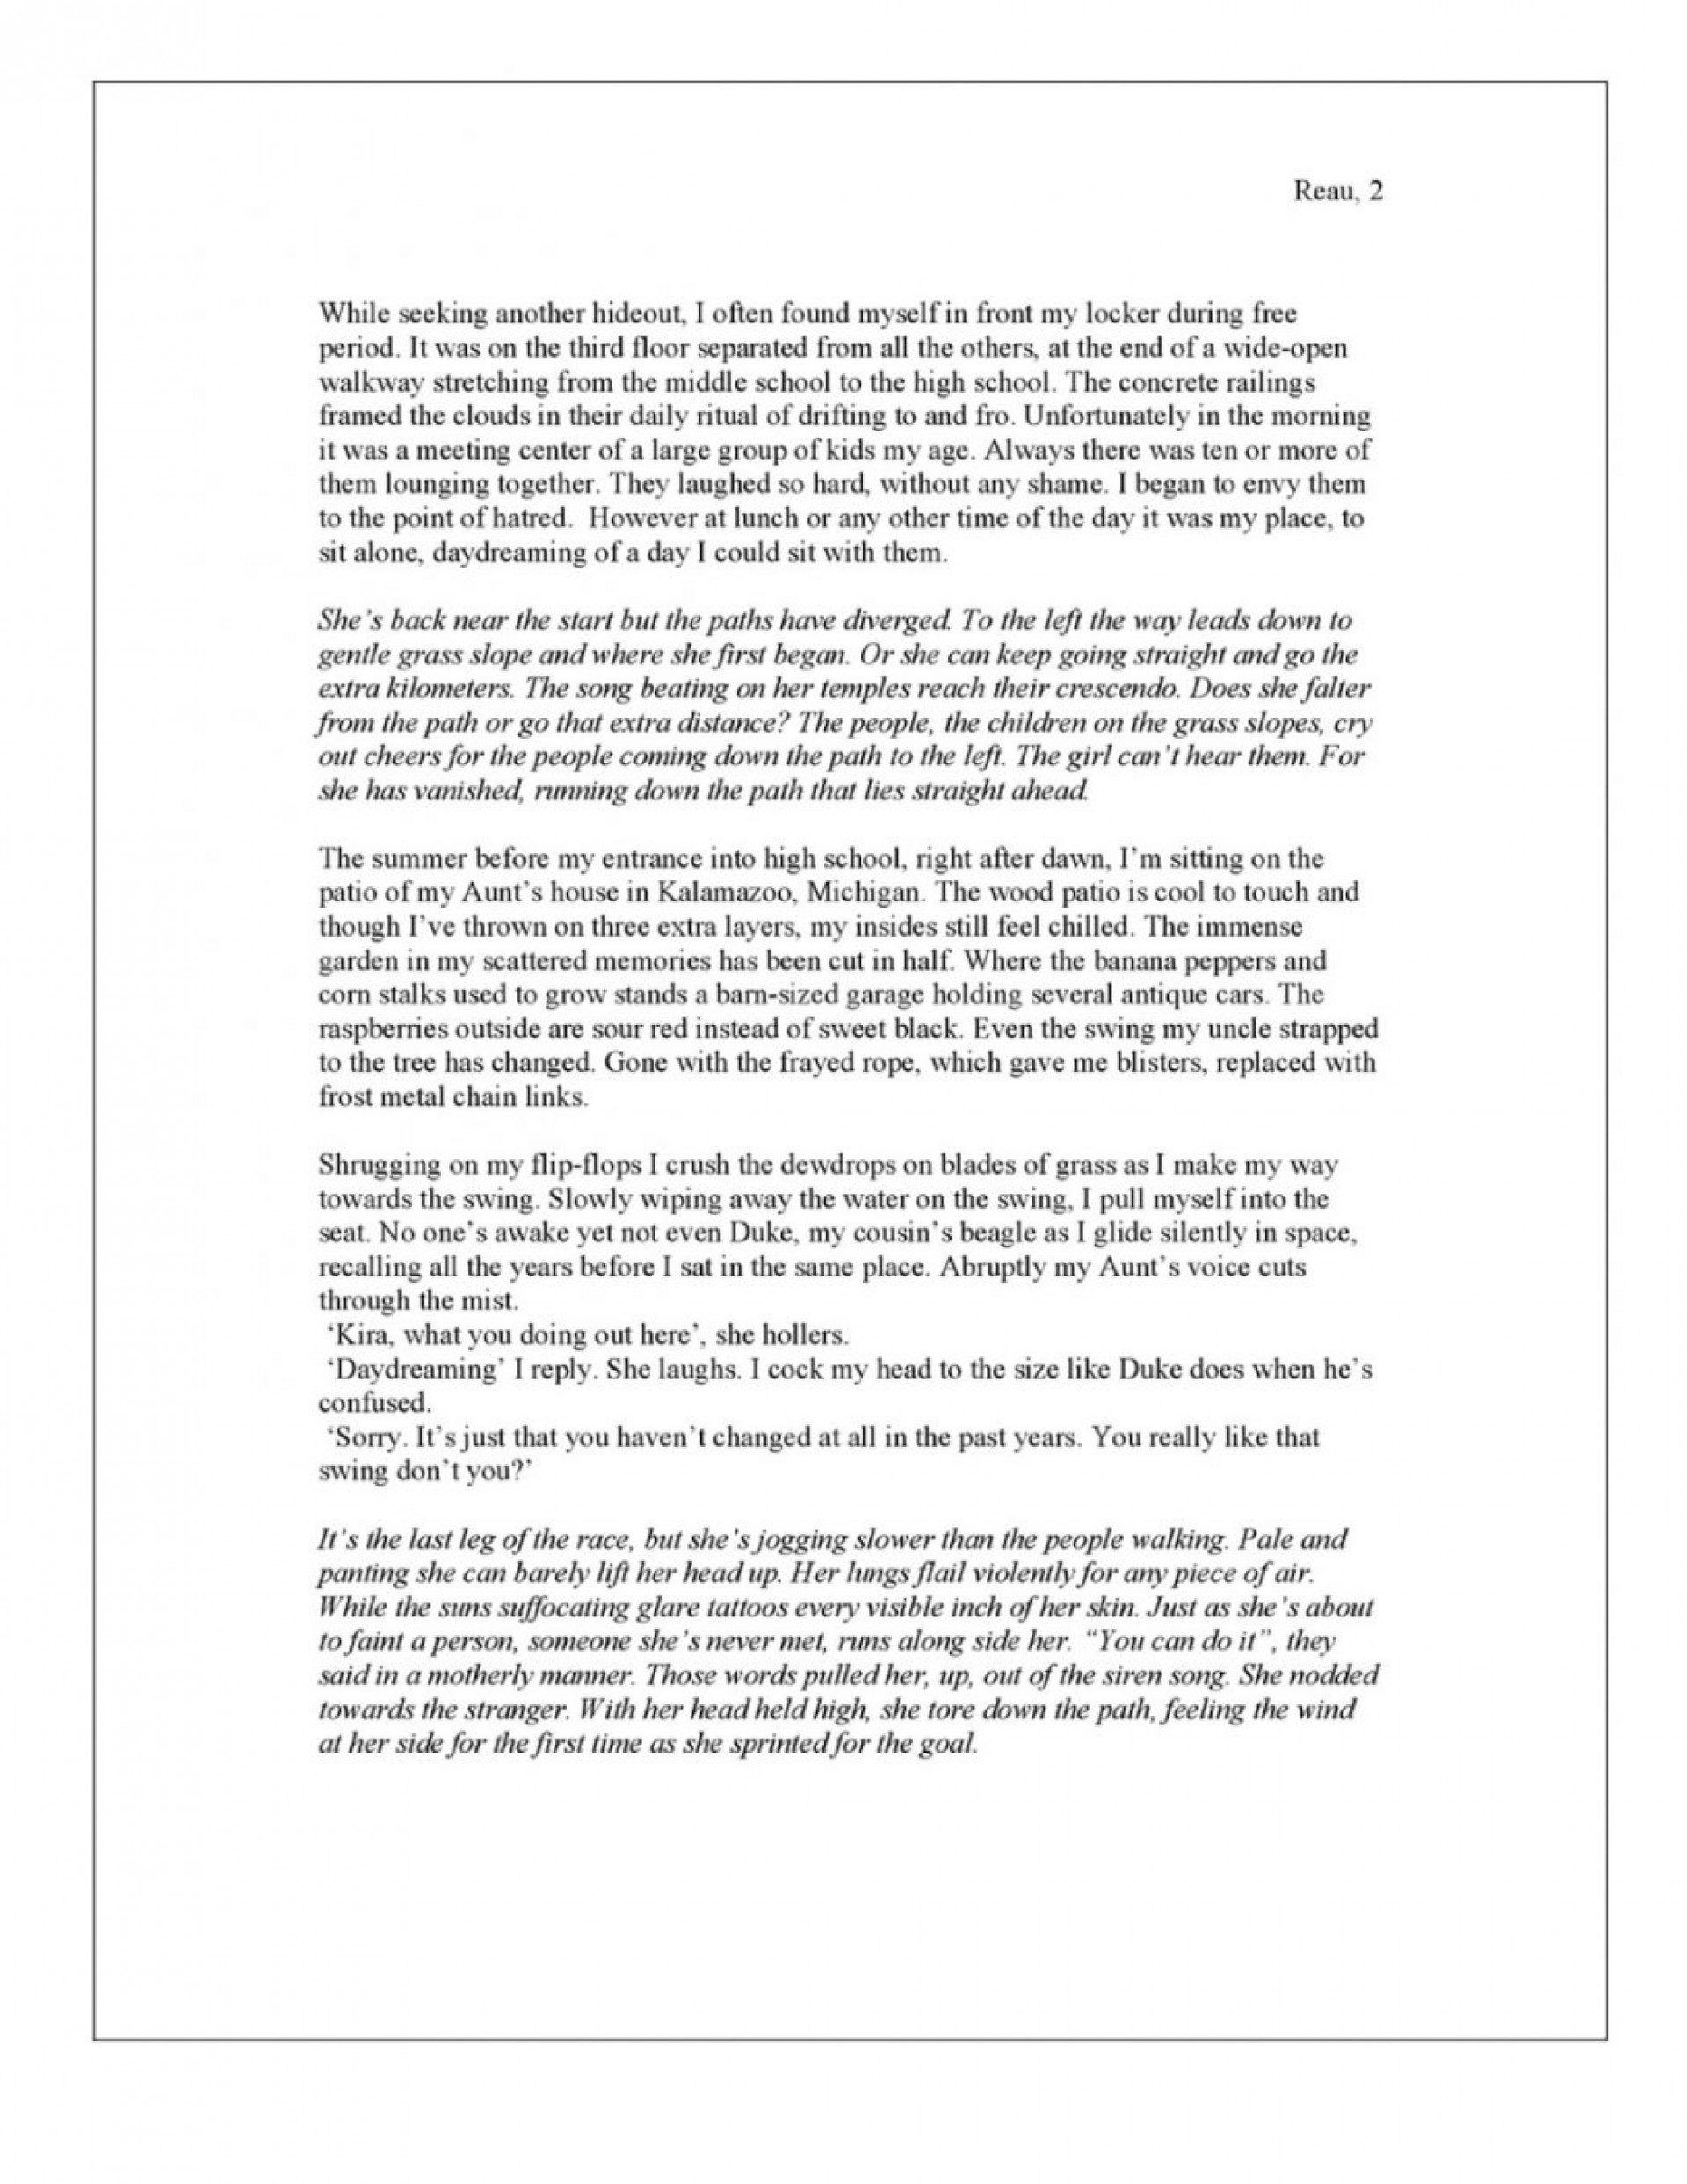 018 Narration Essay Define Narrative Definition Of The Life A Misant How To Write My Help Me 1048x1357 Fascinating Writing Personal Narrative/descriptive 1920